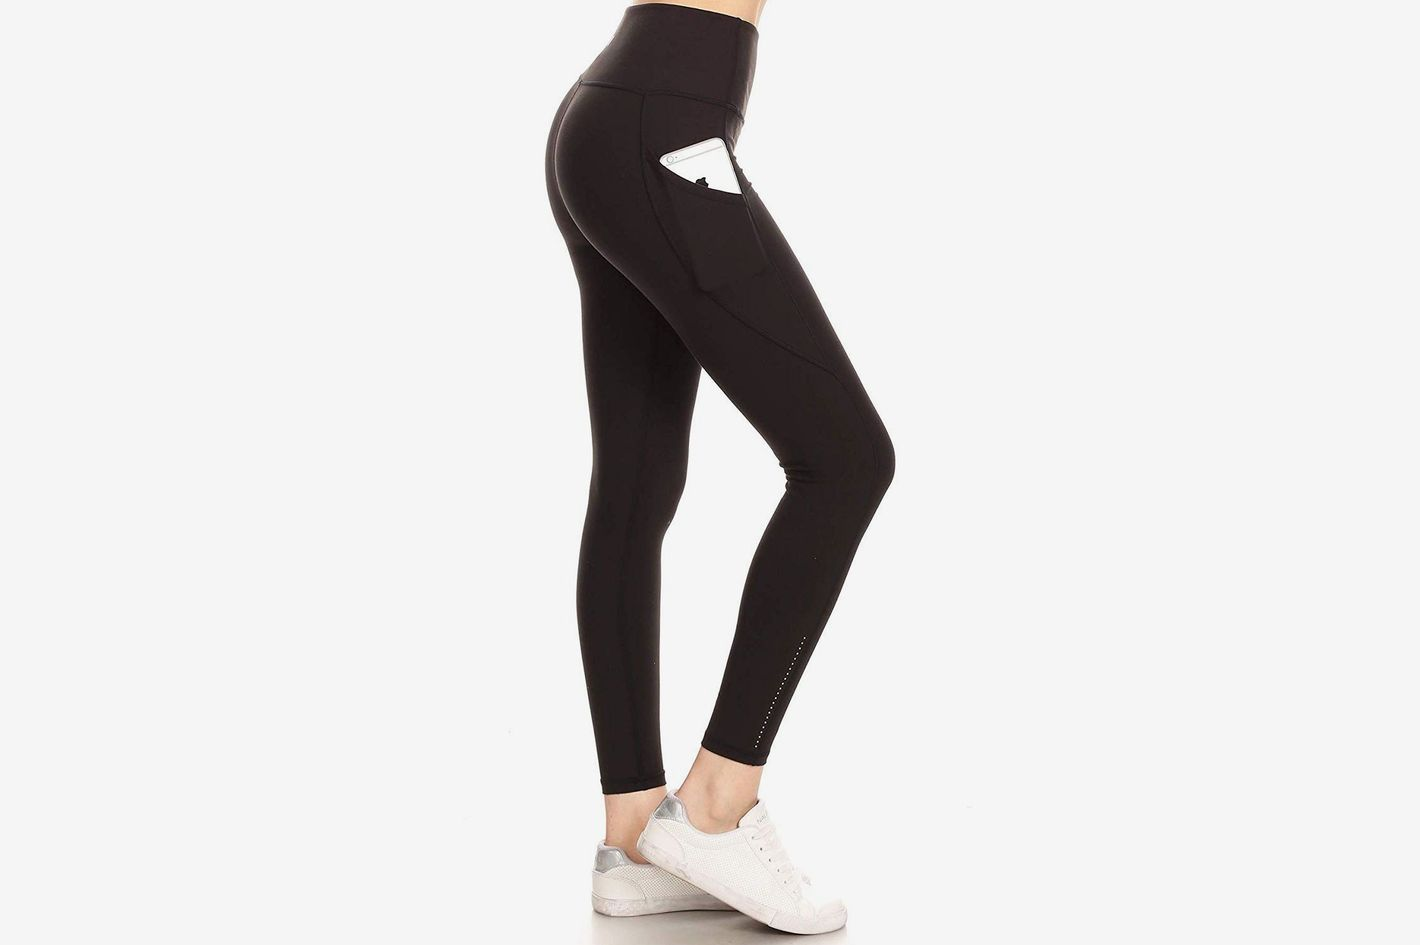 10c2c5960 Leggings Depot High Waisted Leggings